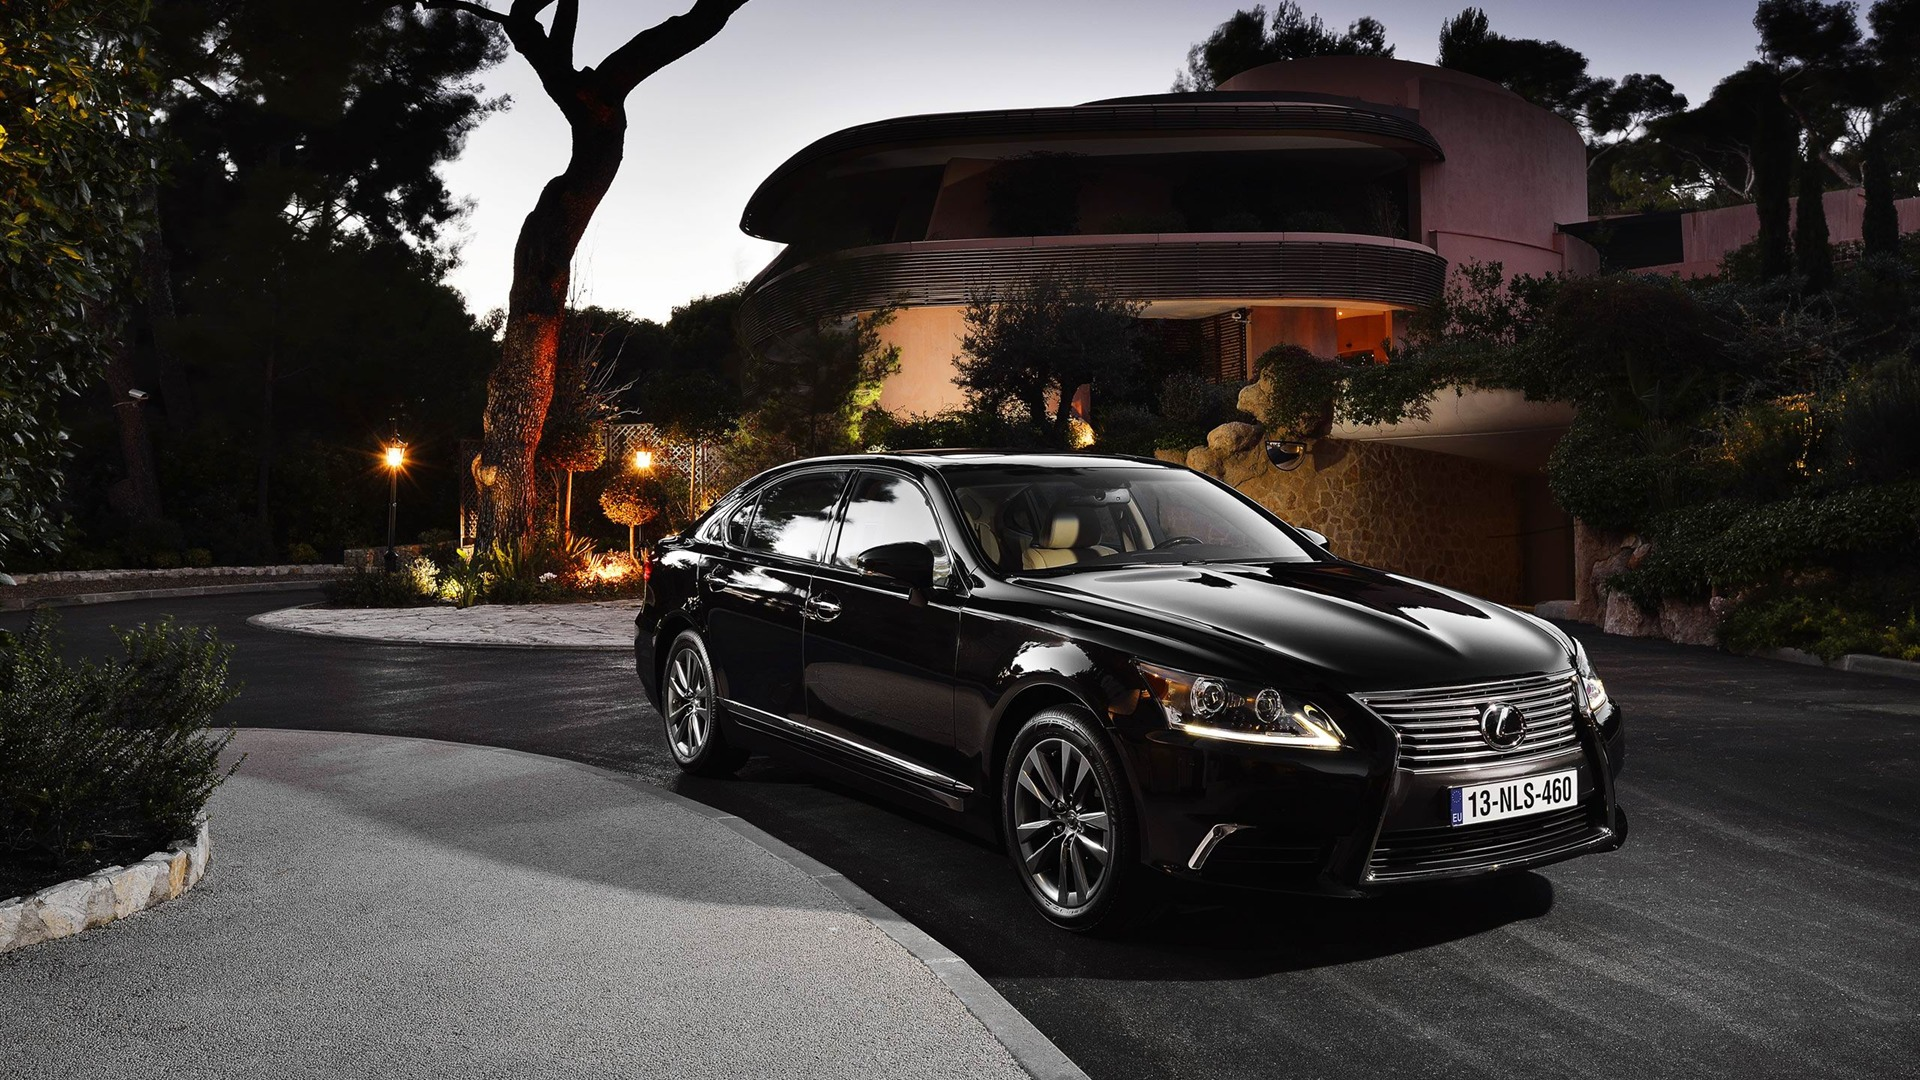 2017 Lexus LS EU Version photo - 2